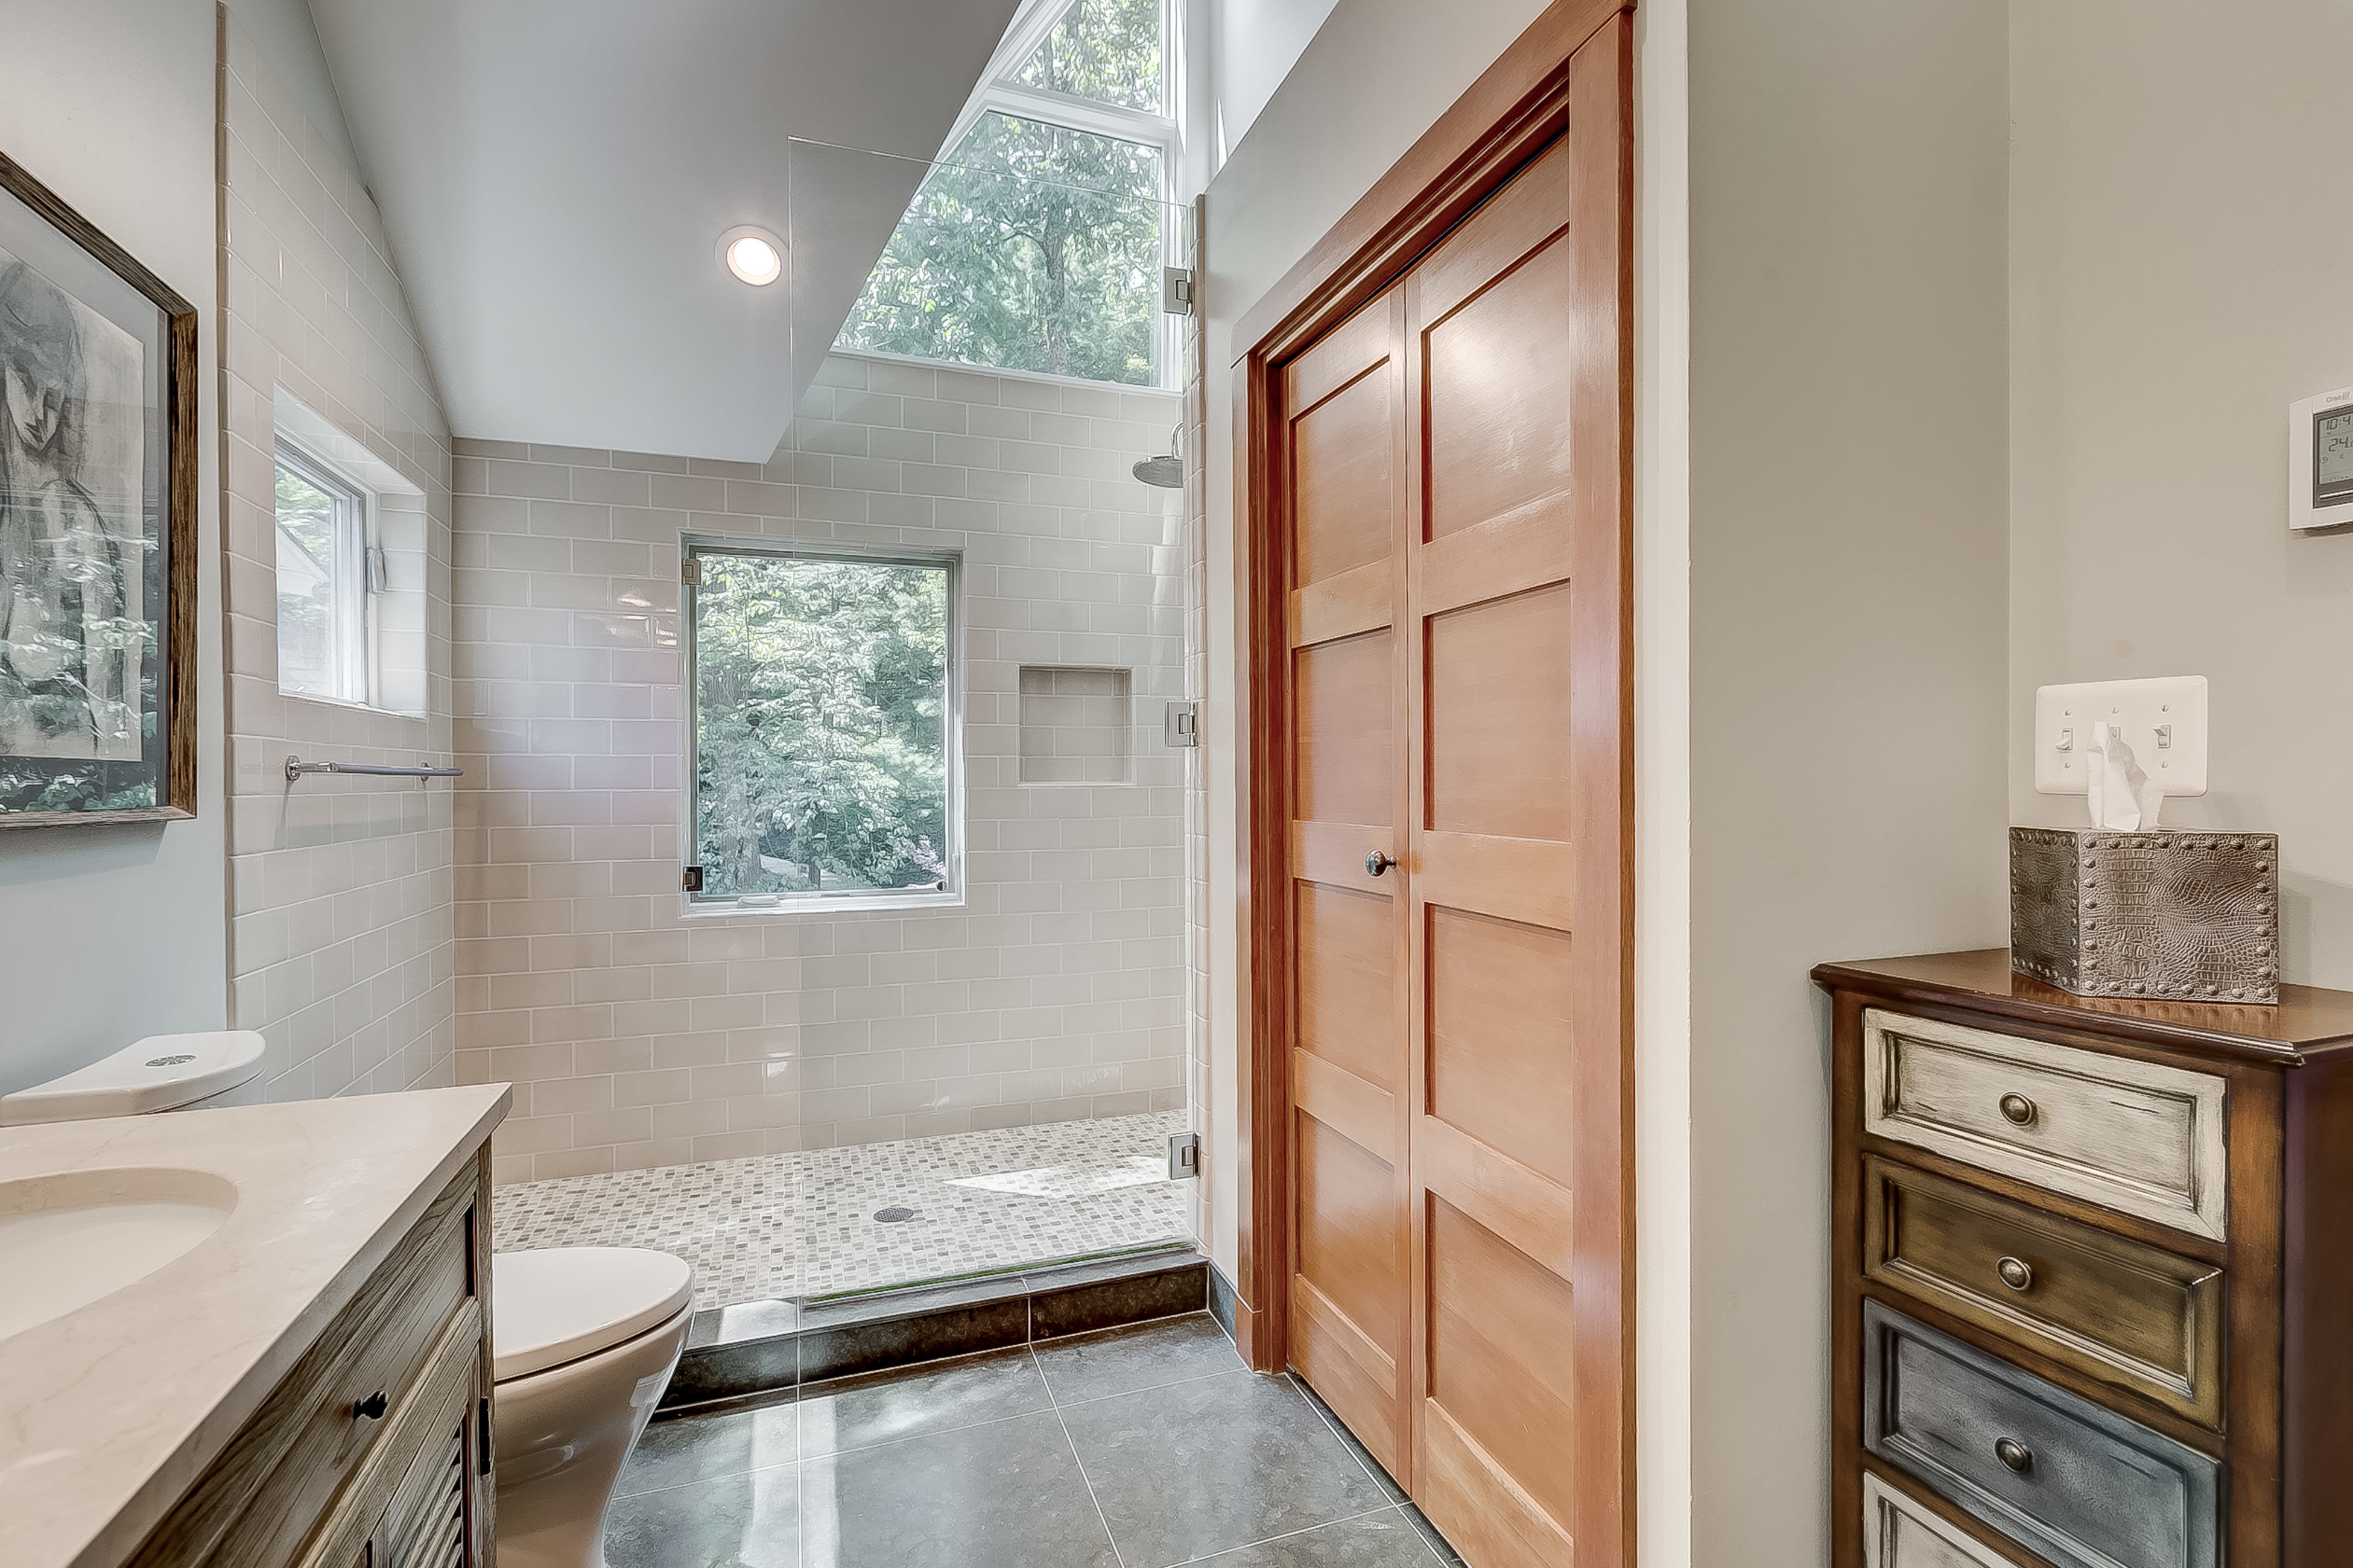 behold the shower to beat all showers